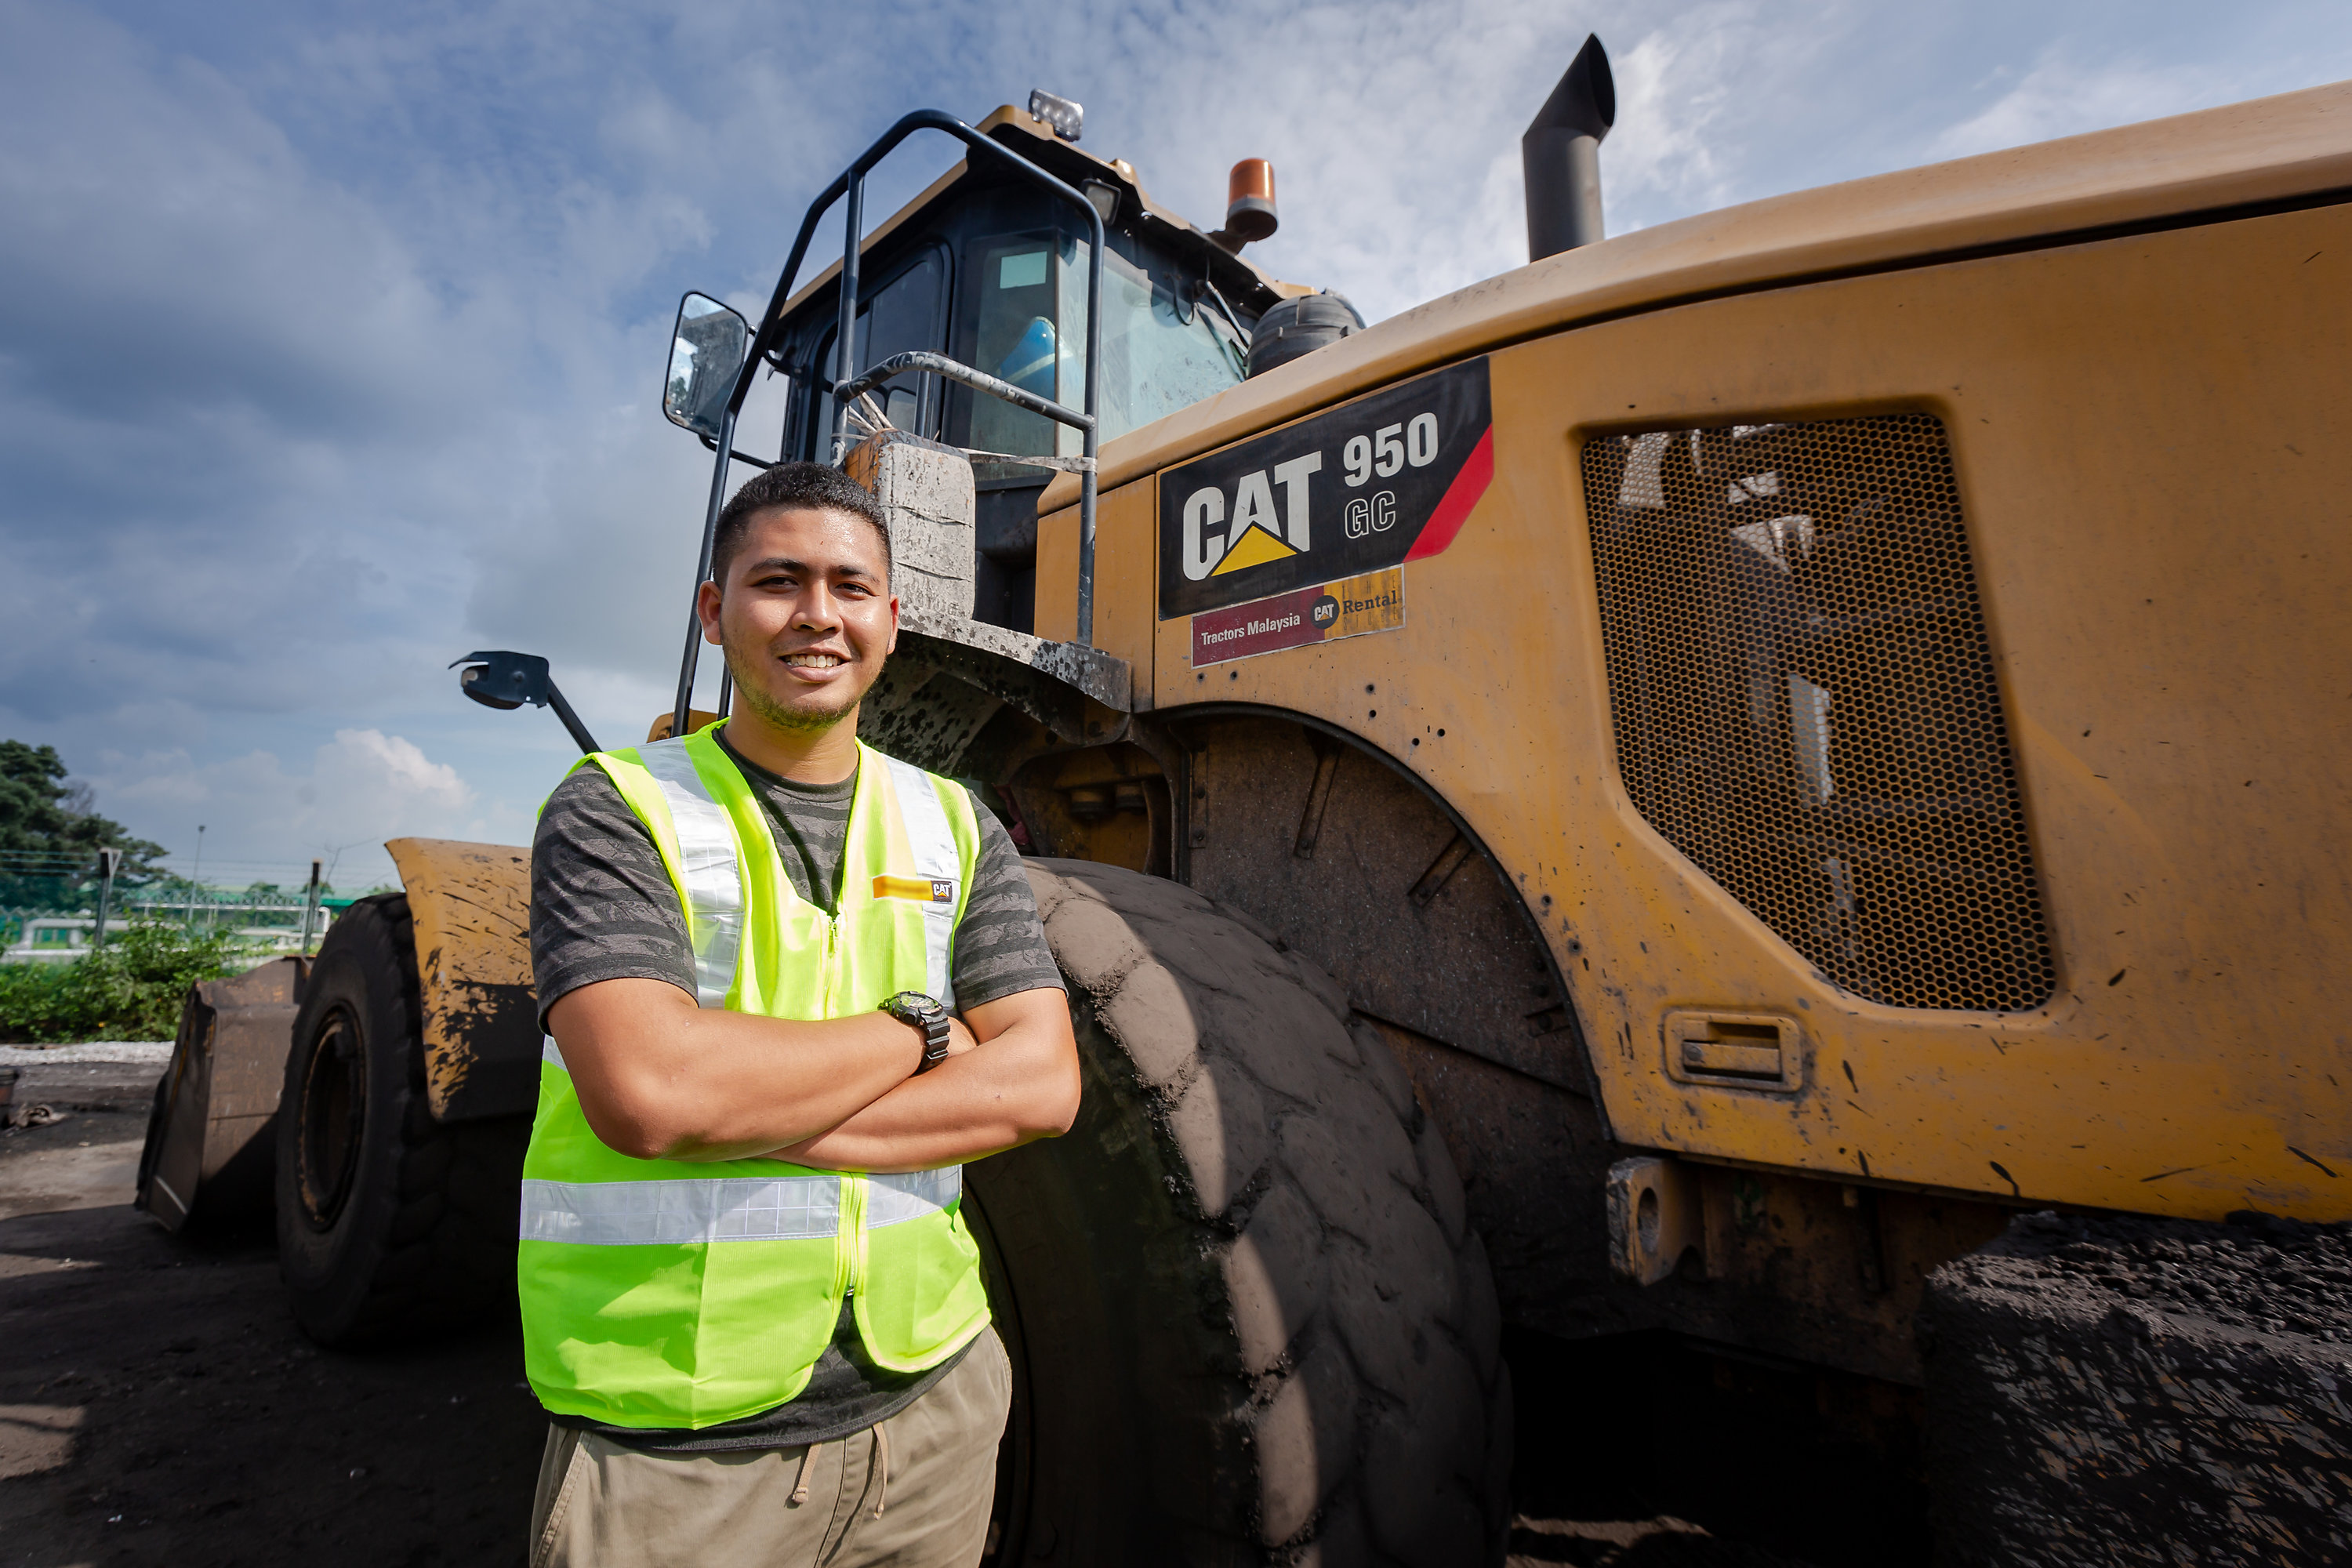 Caterpillar is here to support customers